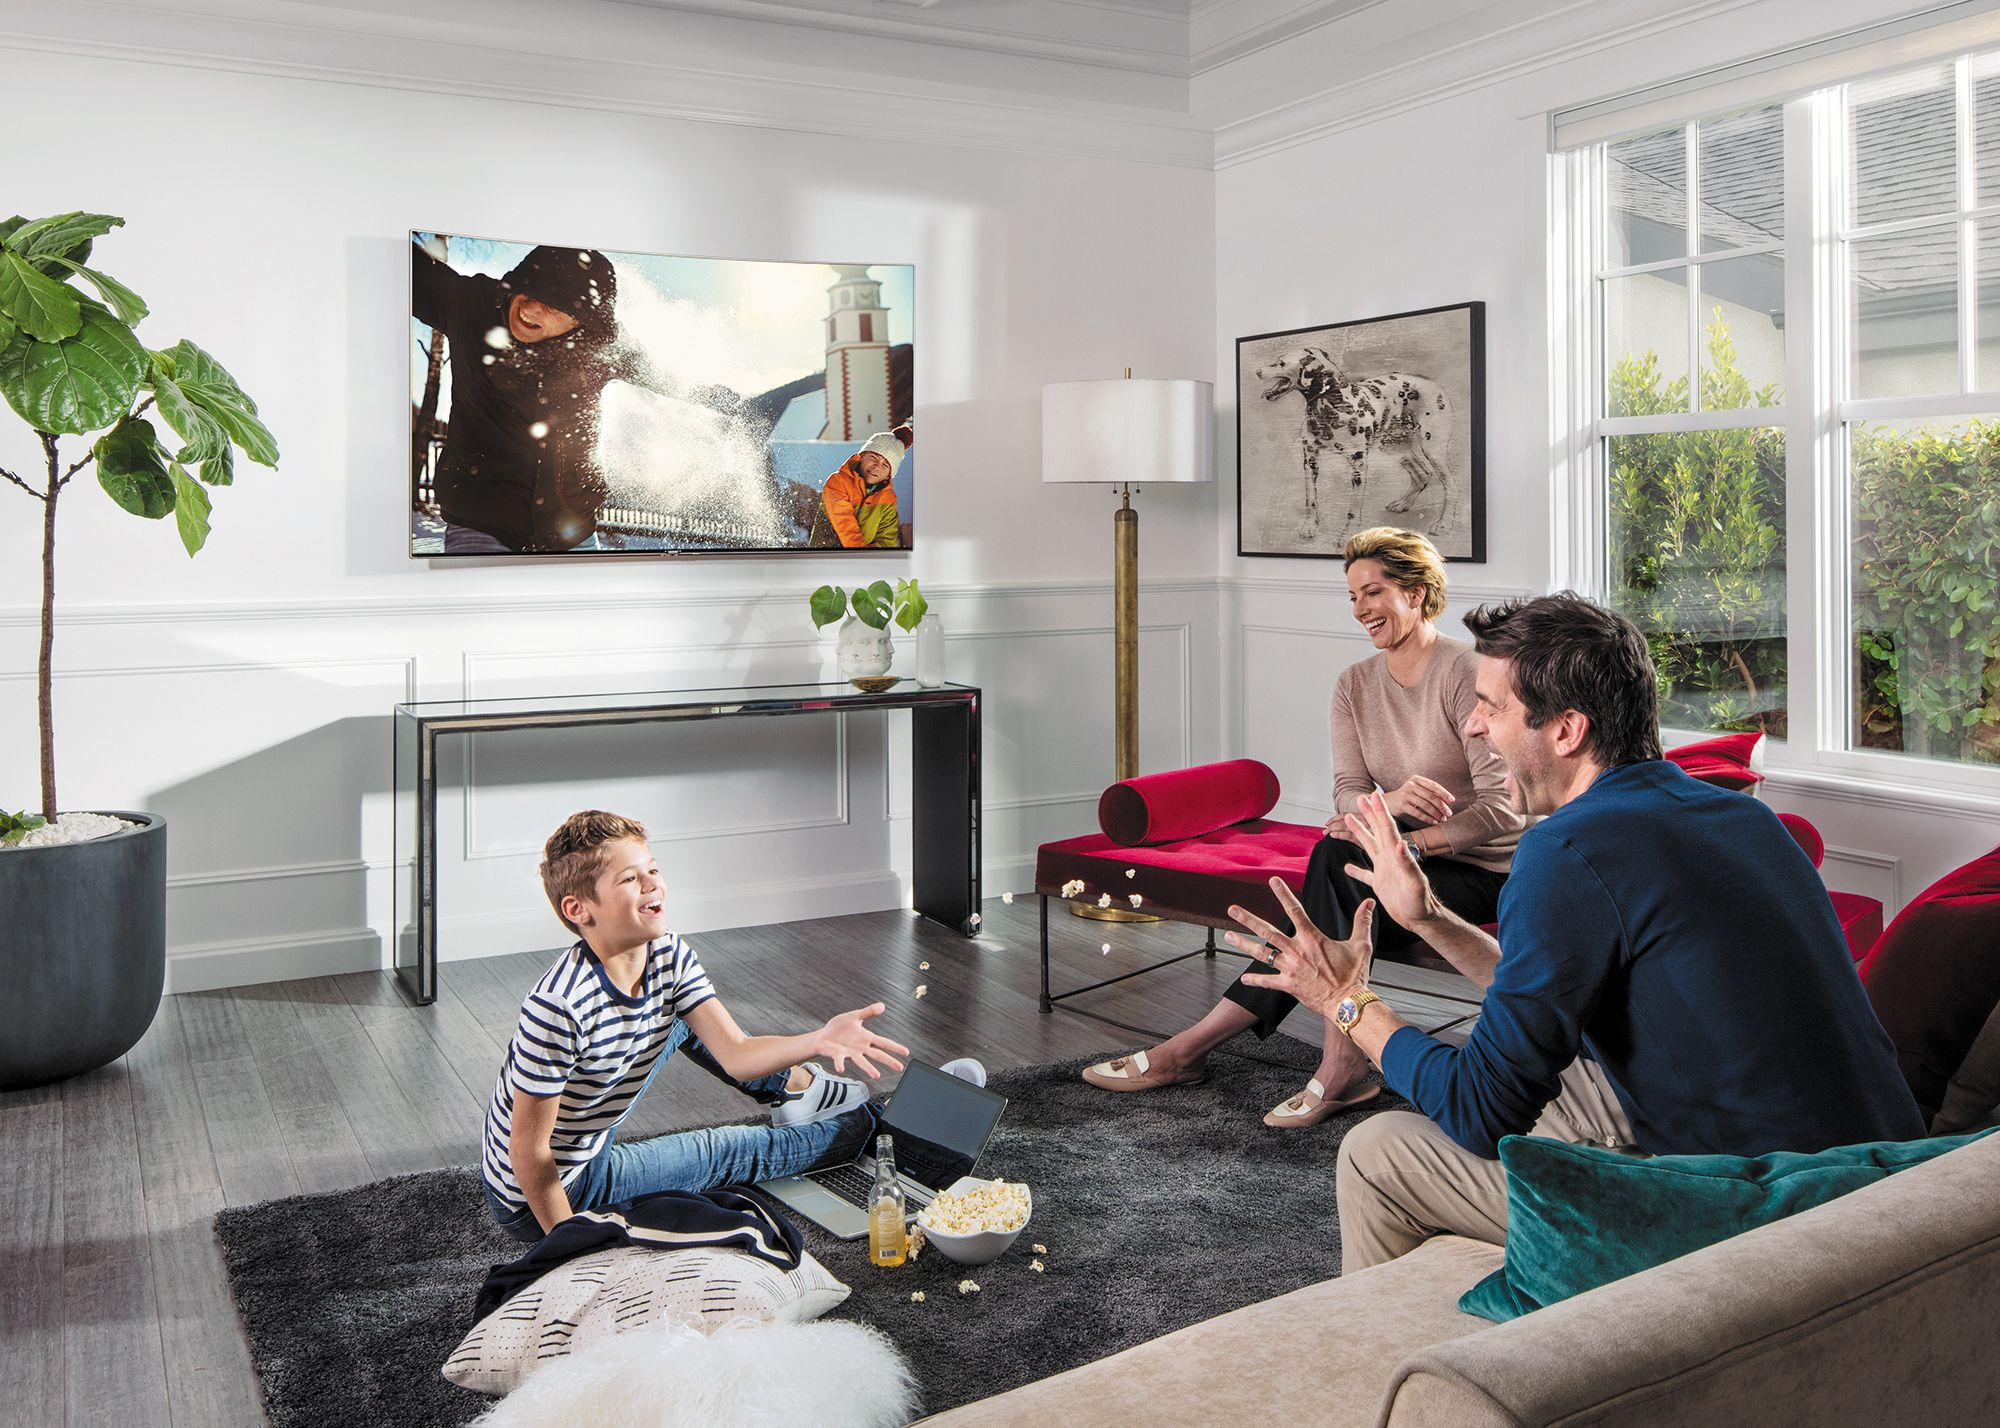 Shop samsung k tvs at rc willey and get the best possible picture